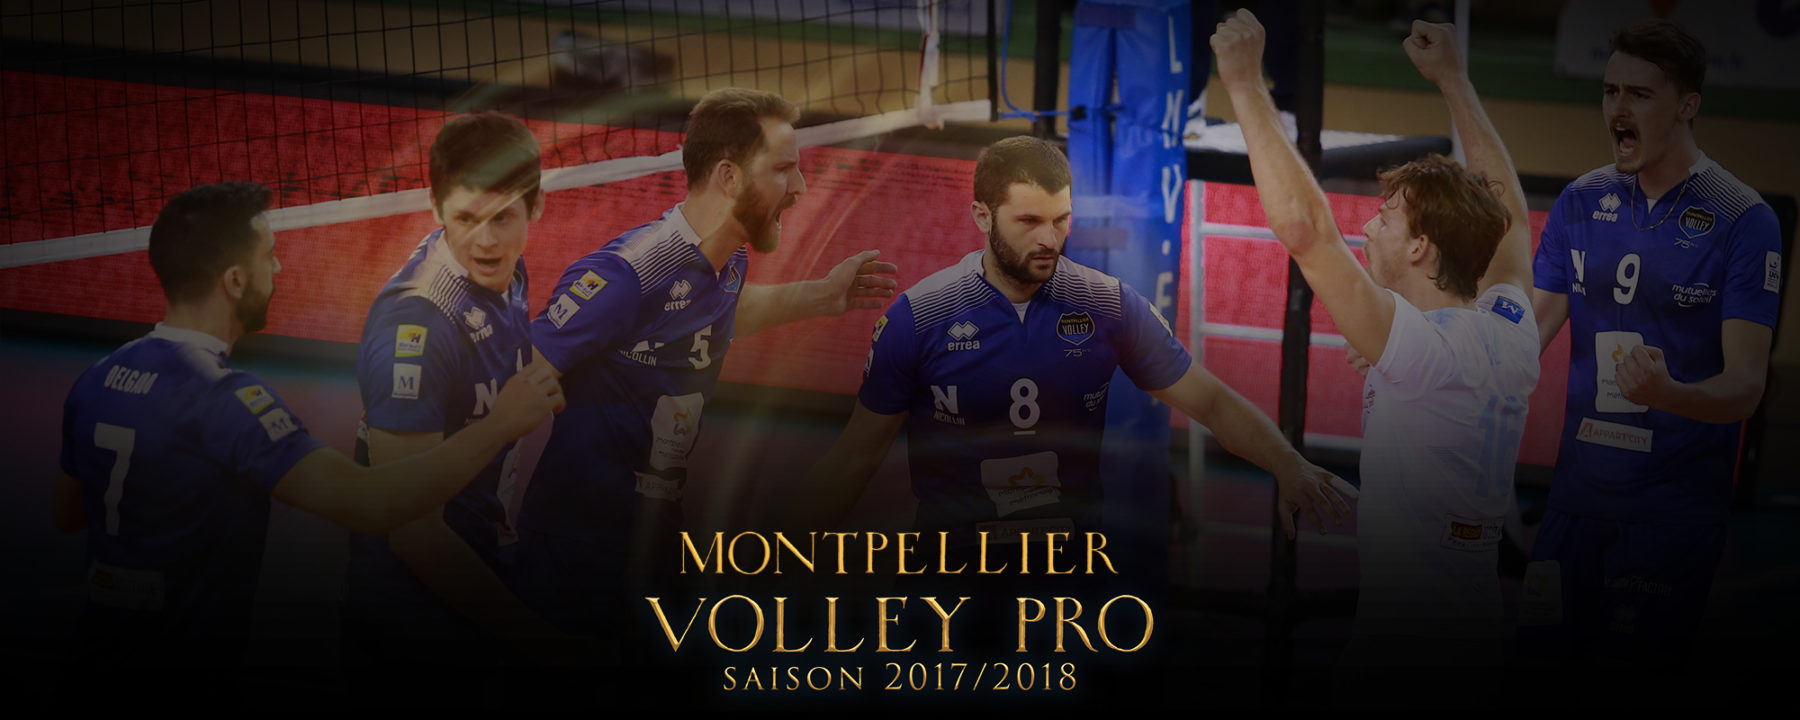 Ligue A Week 3 Recap: Montpellier to the Top with Chaumont on Tap